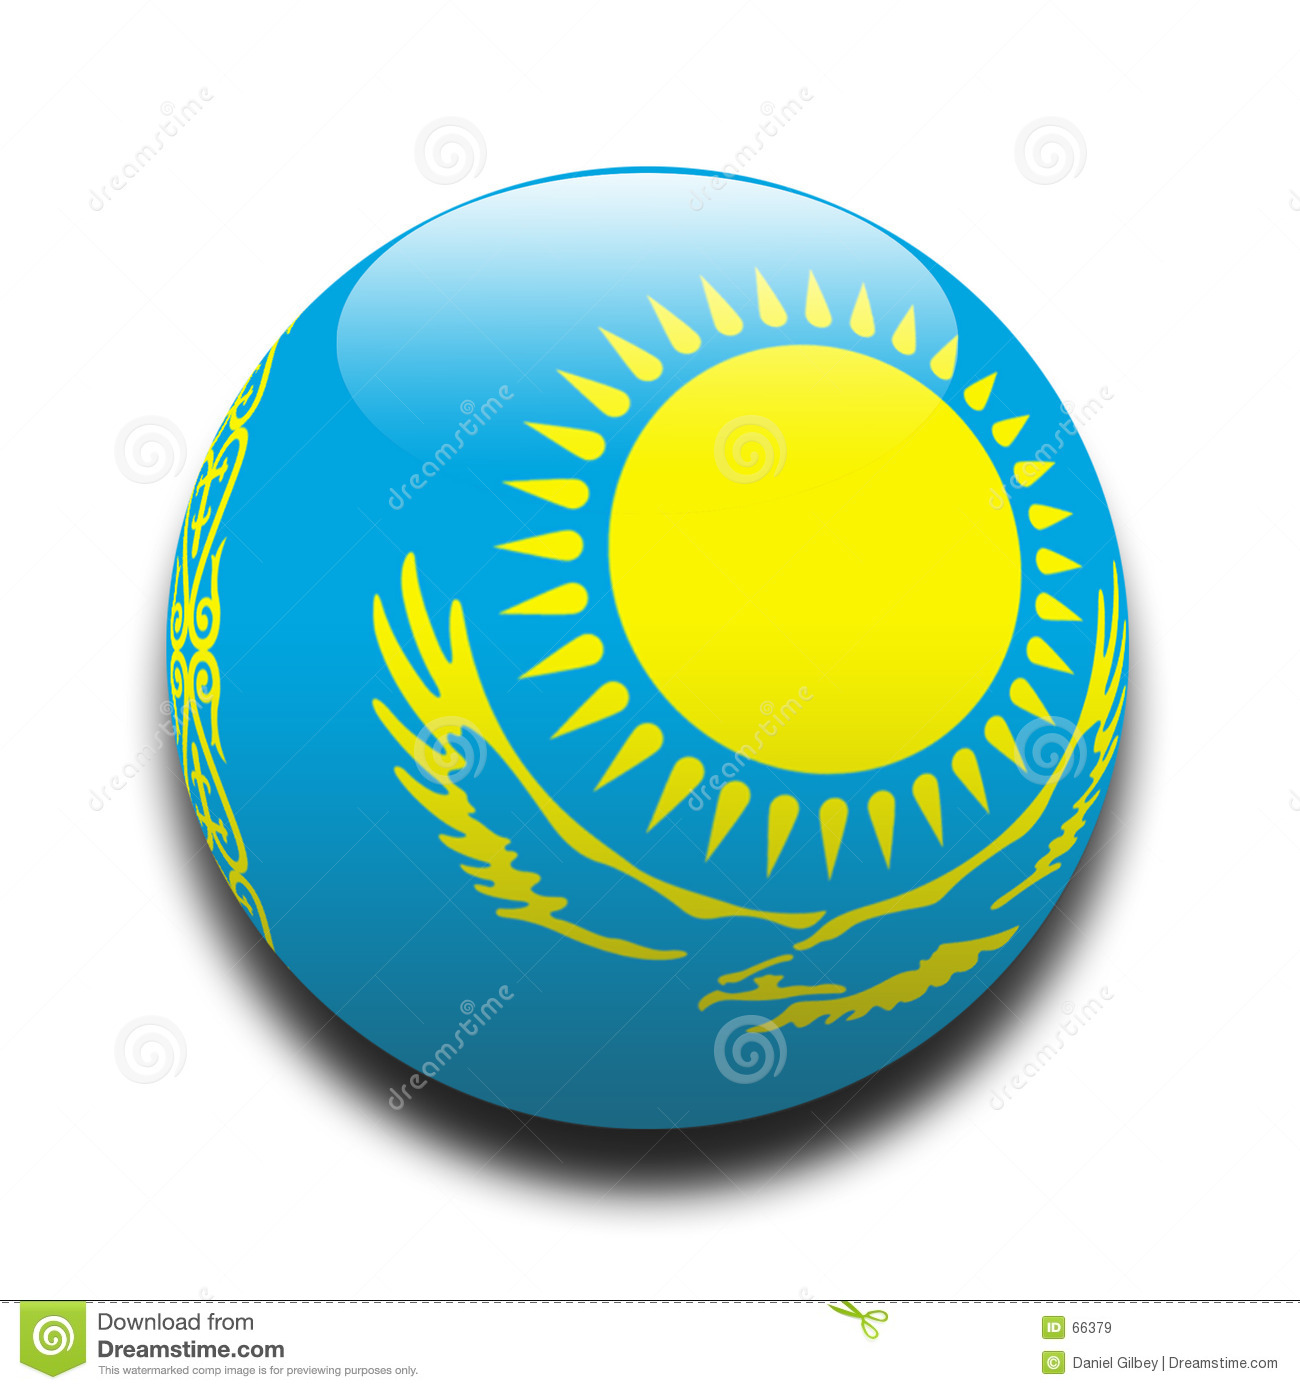 Flag Of Kazakhstan High Quality Background on Wallpapers Vista